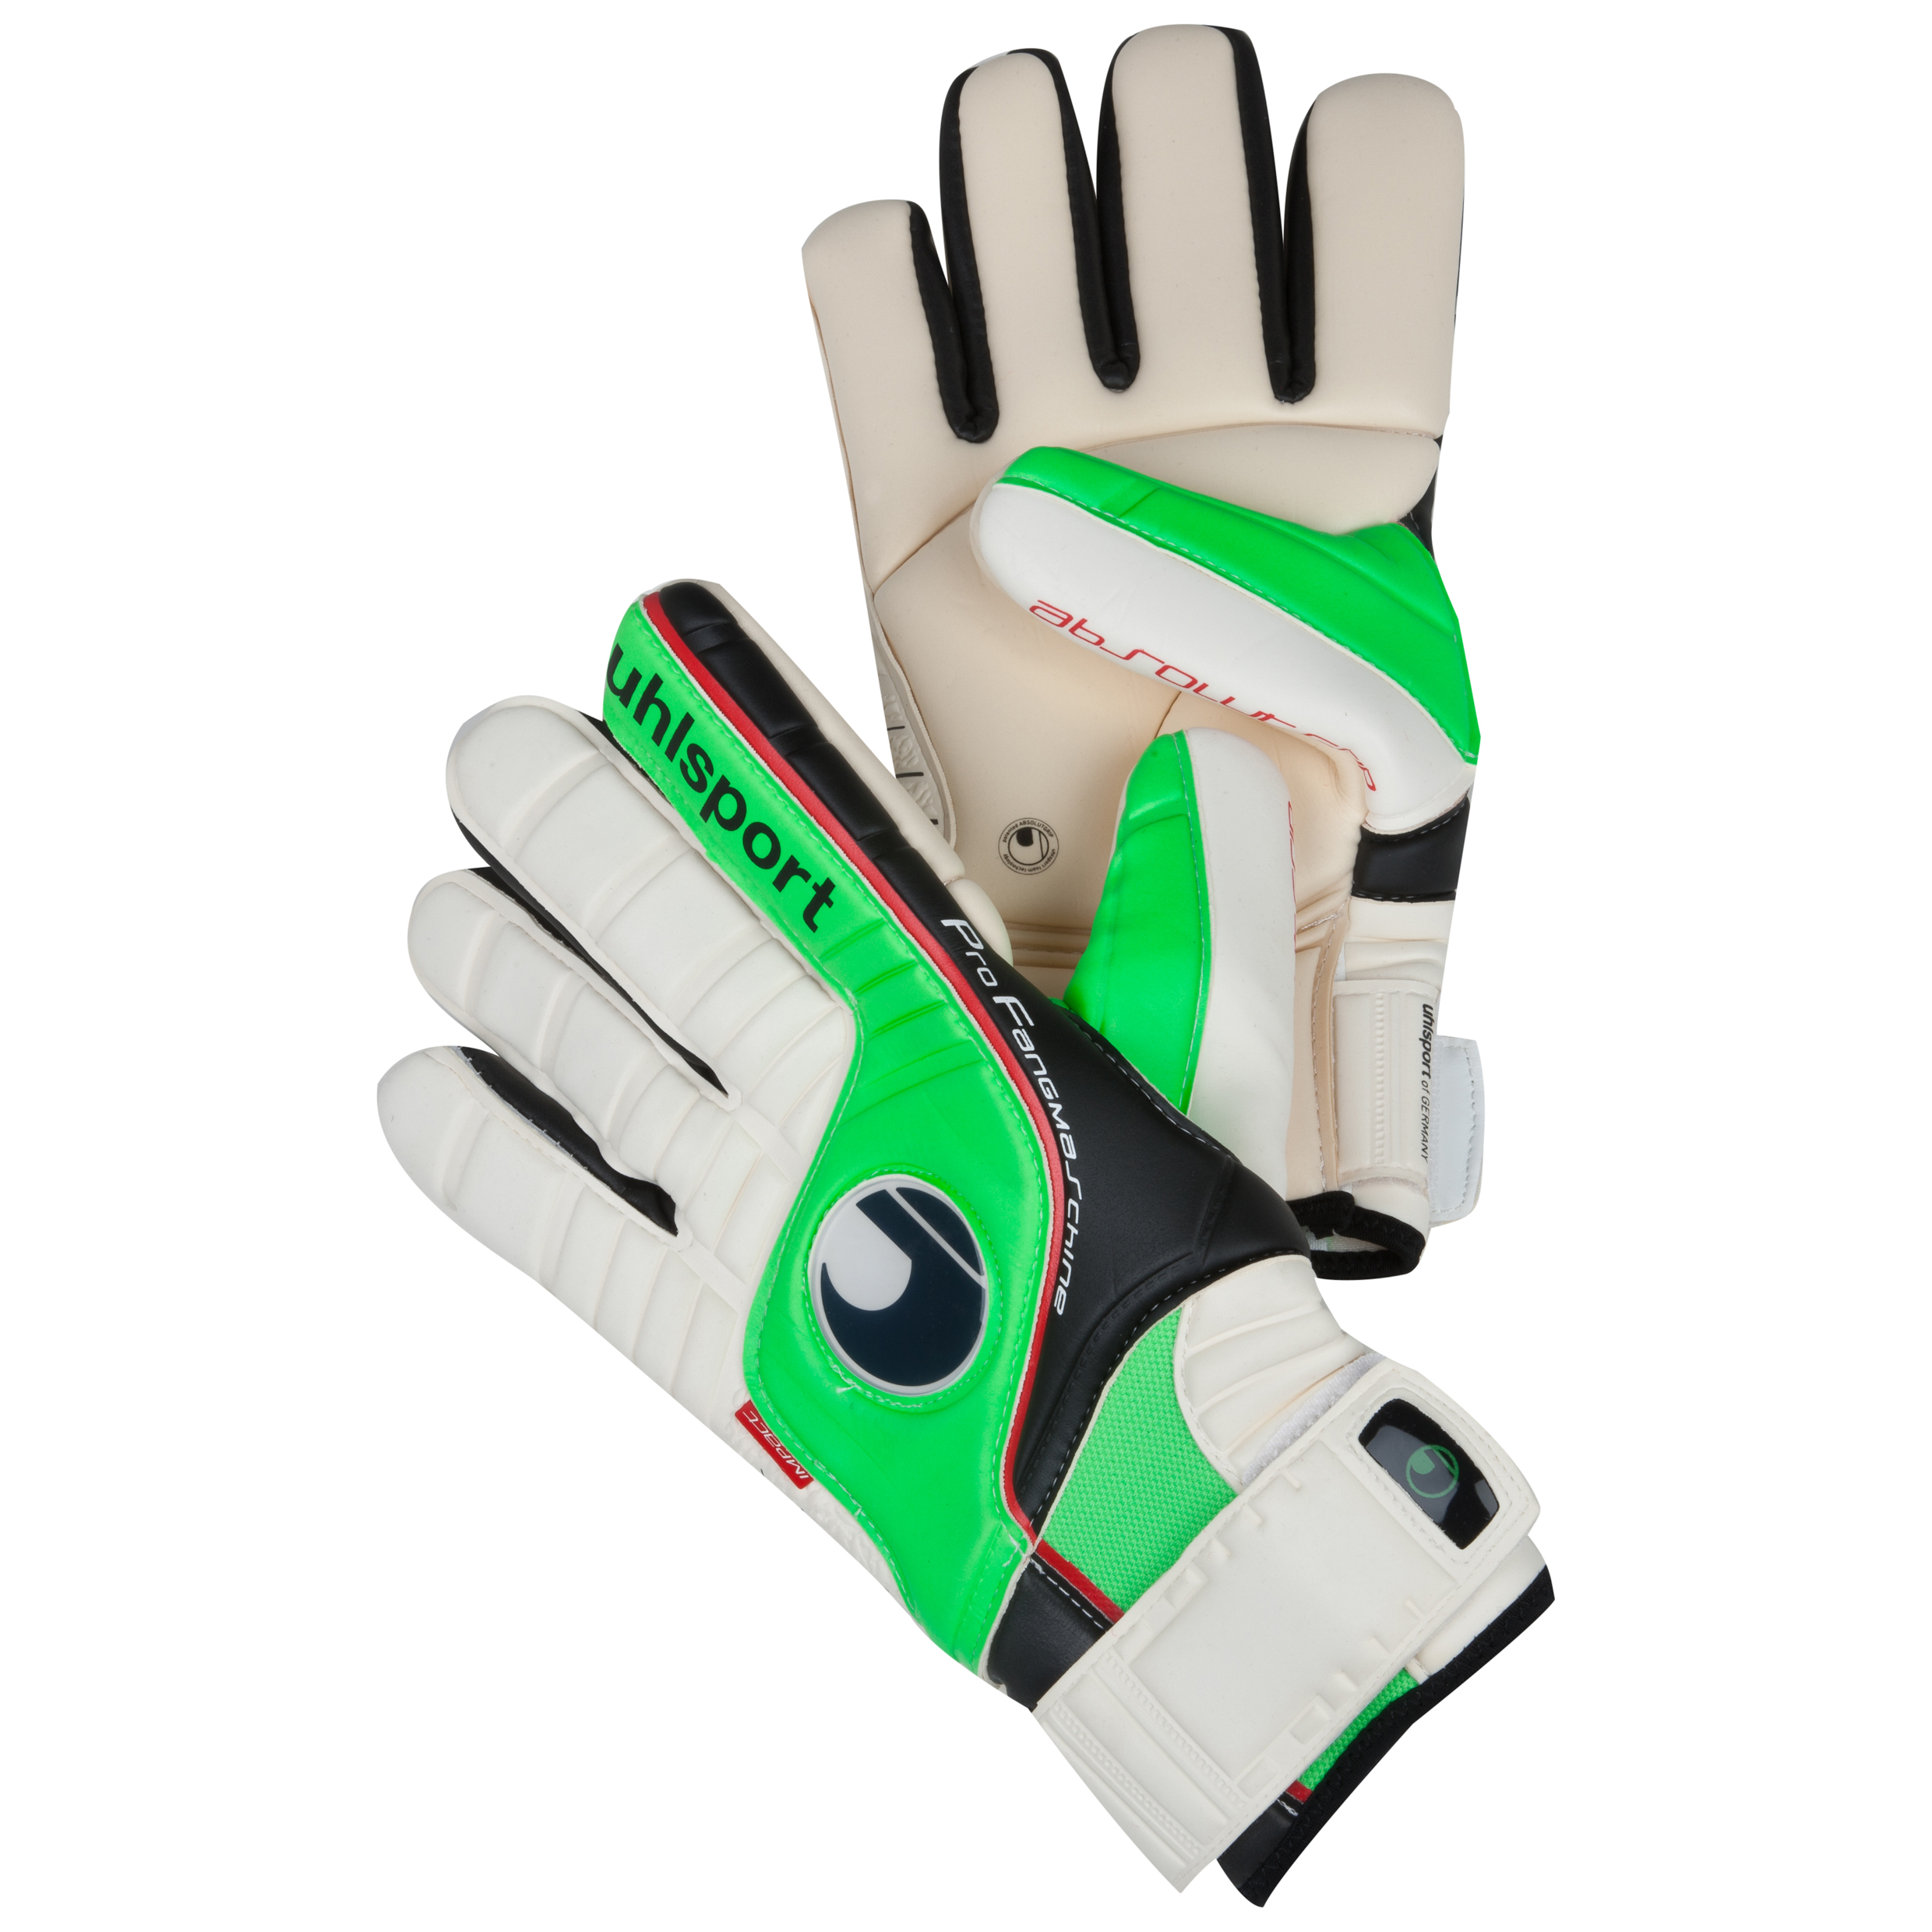 Uhlsport Fangmaschine HN Pro Goalkeeper Gloves - White/Flashgreen/Black